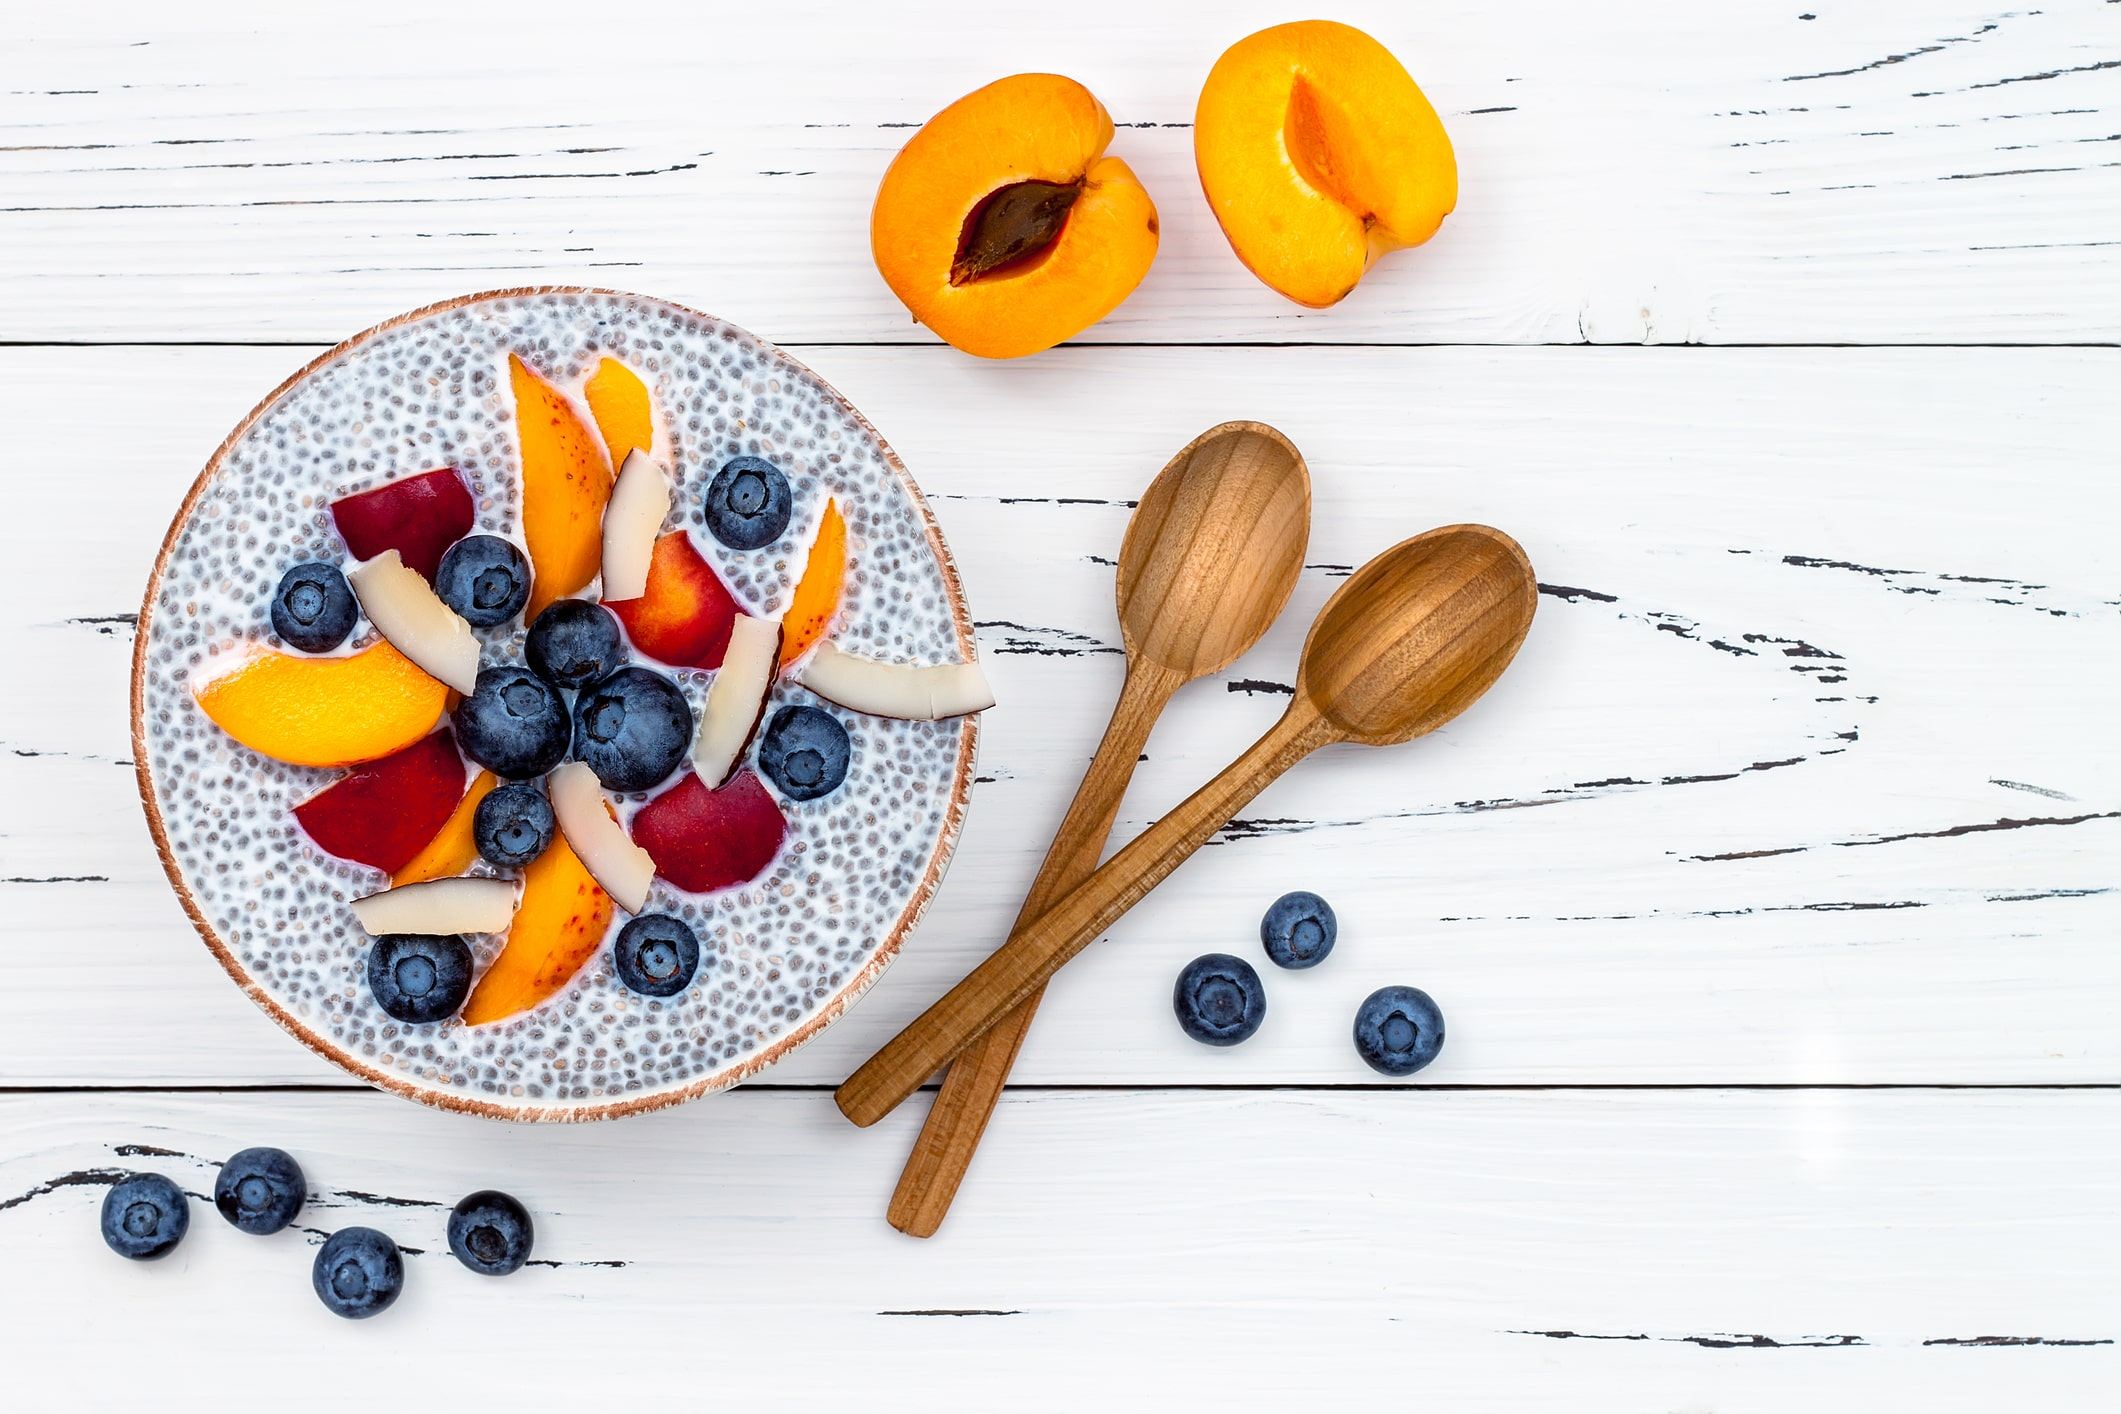 detox-and-healthy-superfoods-breakfast-bowl-concept-vegan-coconut-milk-chia-seeds-pudding-over-rustic-table-with-various-fruits-78204651-min